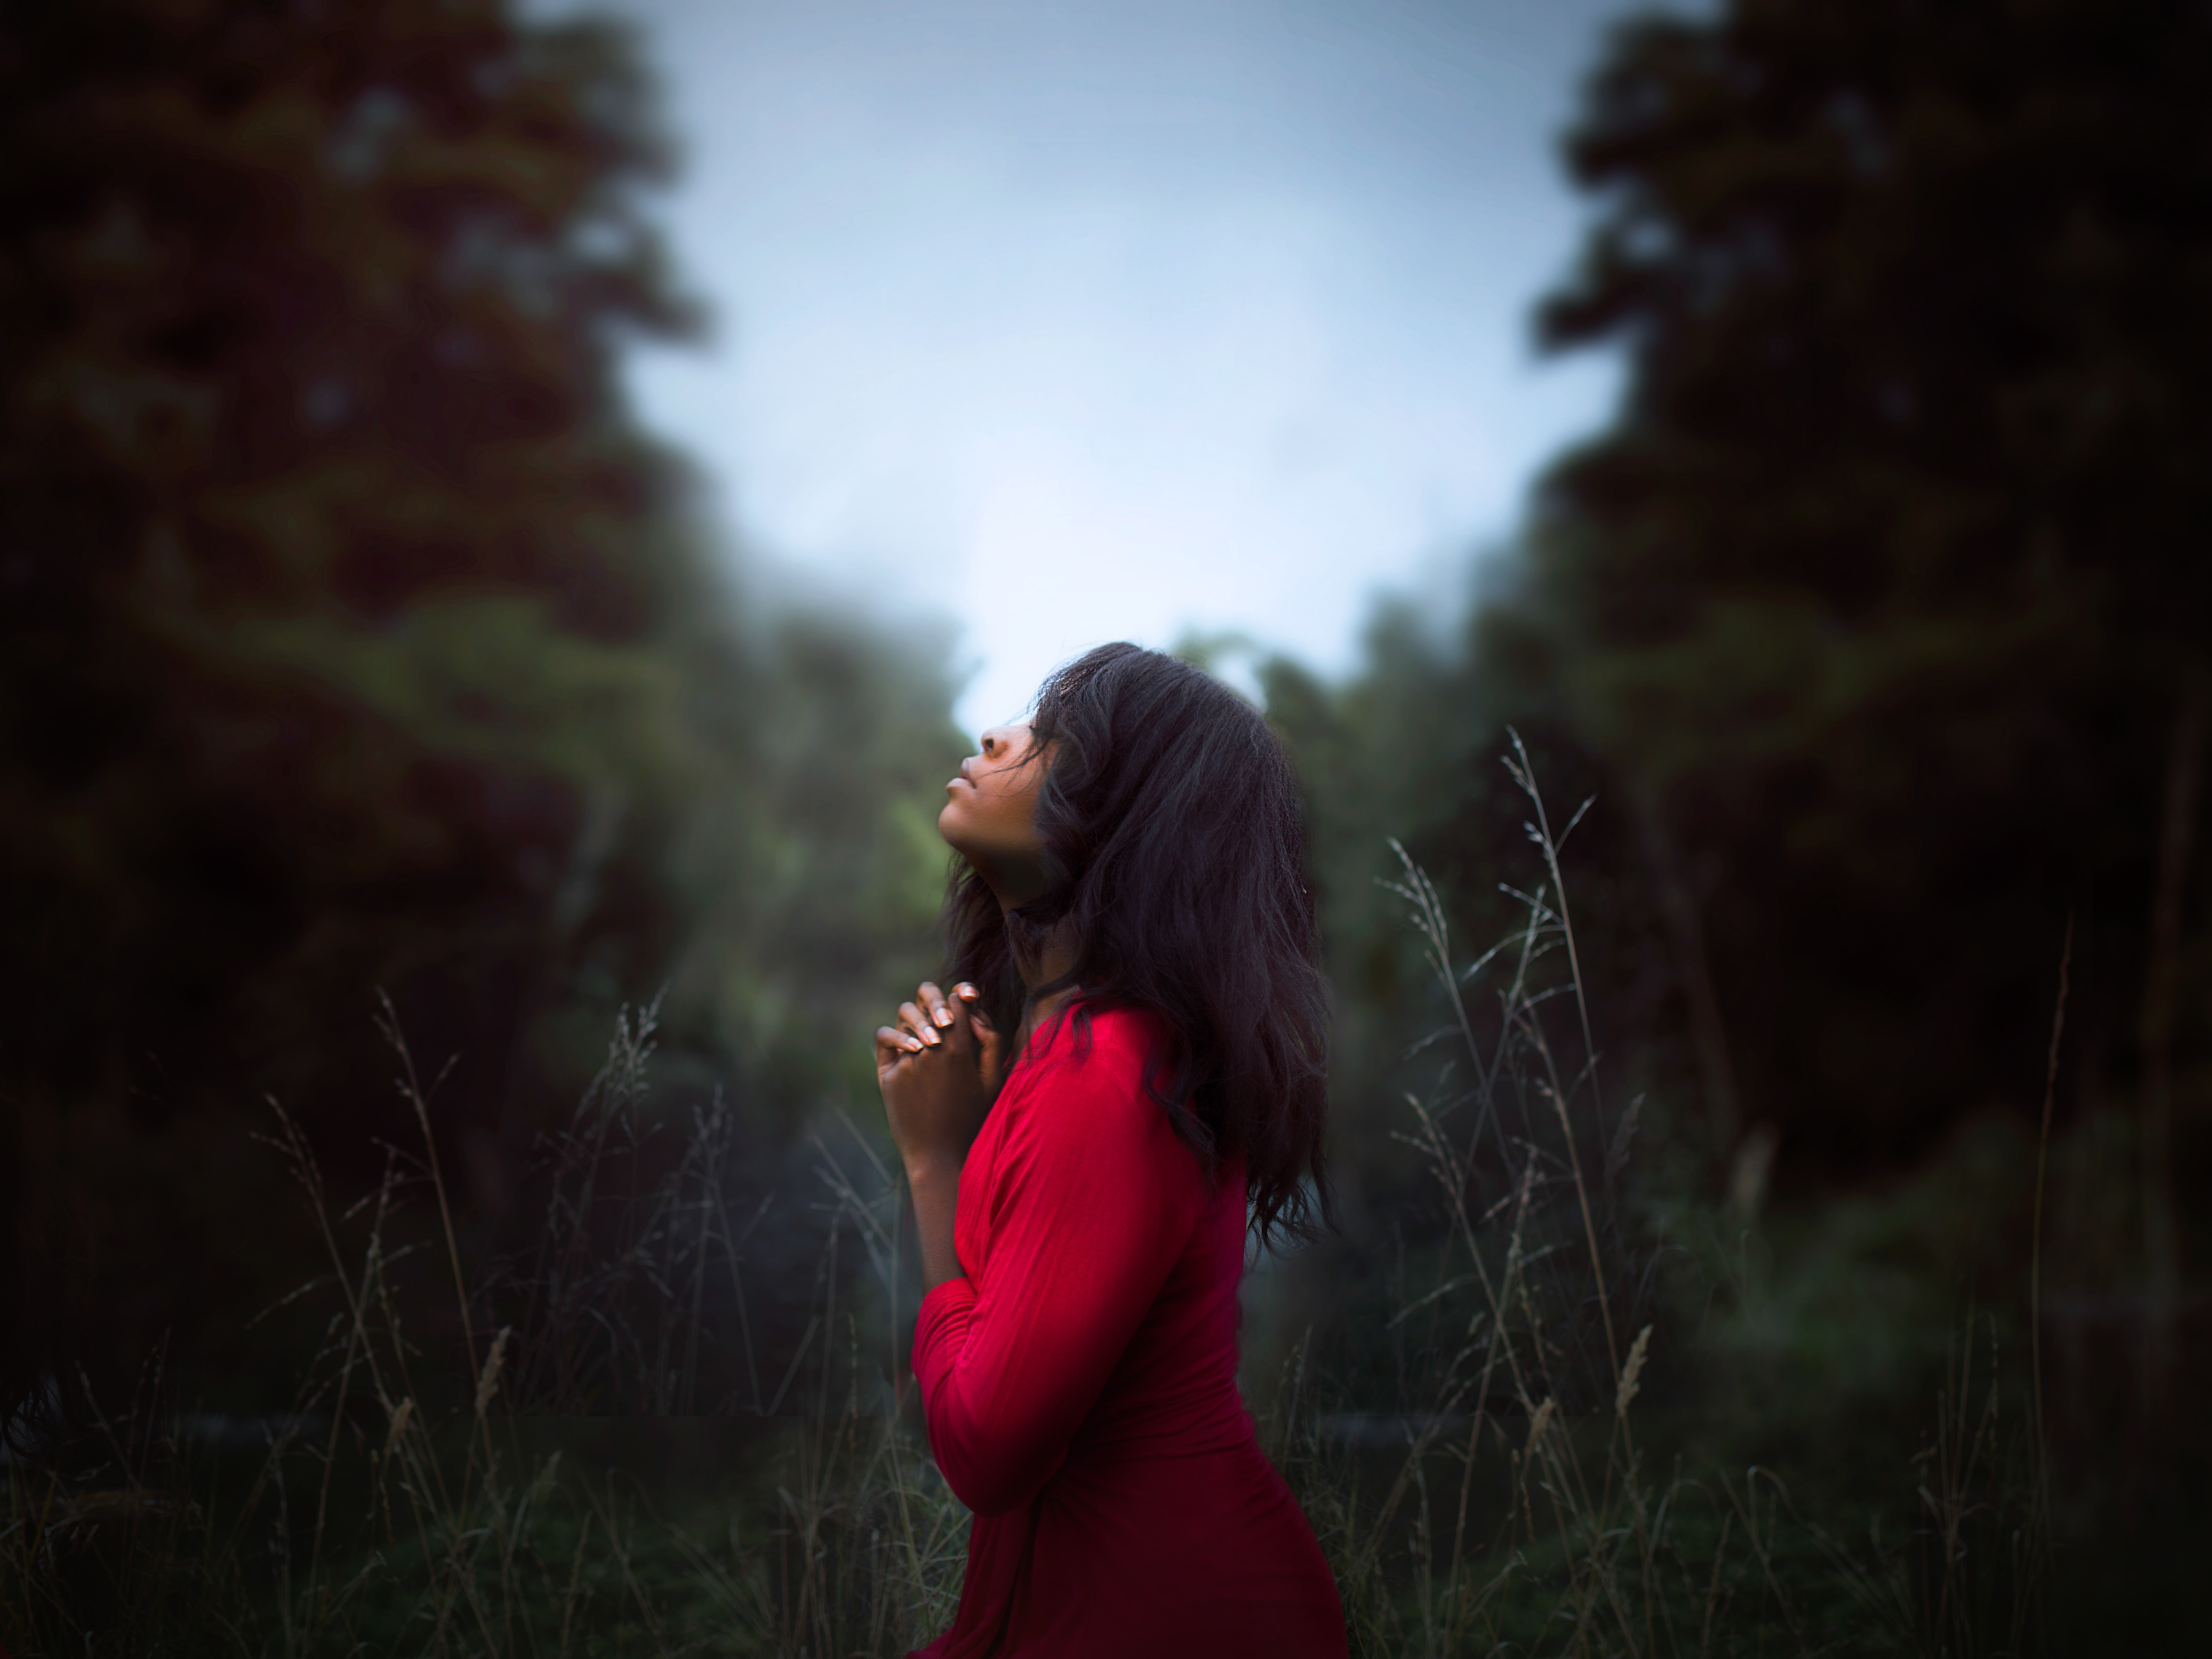 Pensive woman standing in a field praying and thinking